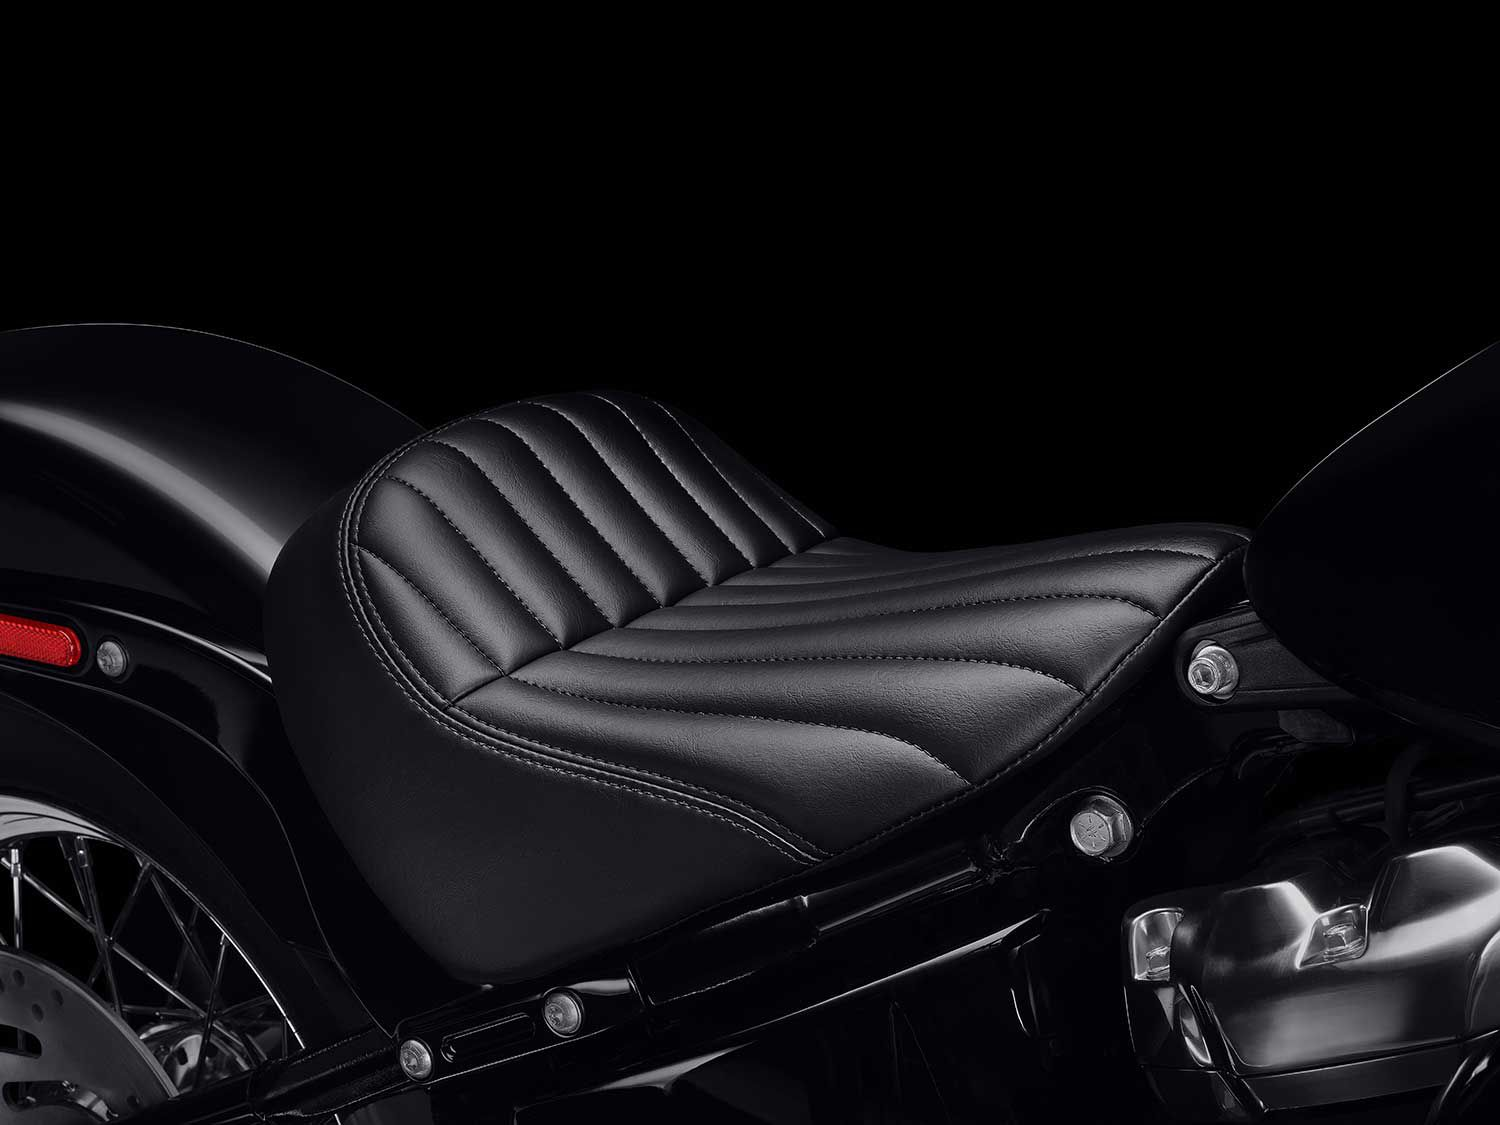 Comes with a solo seat for that bobber style.